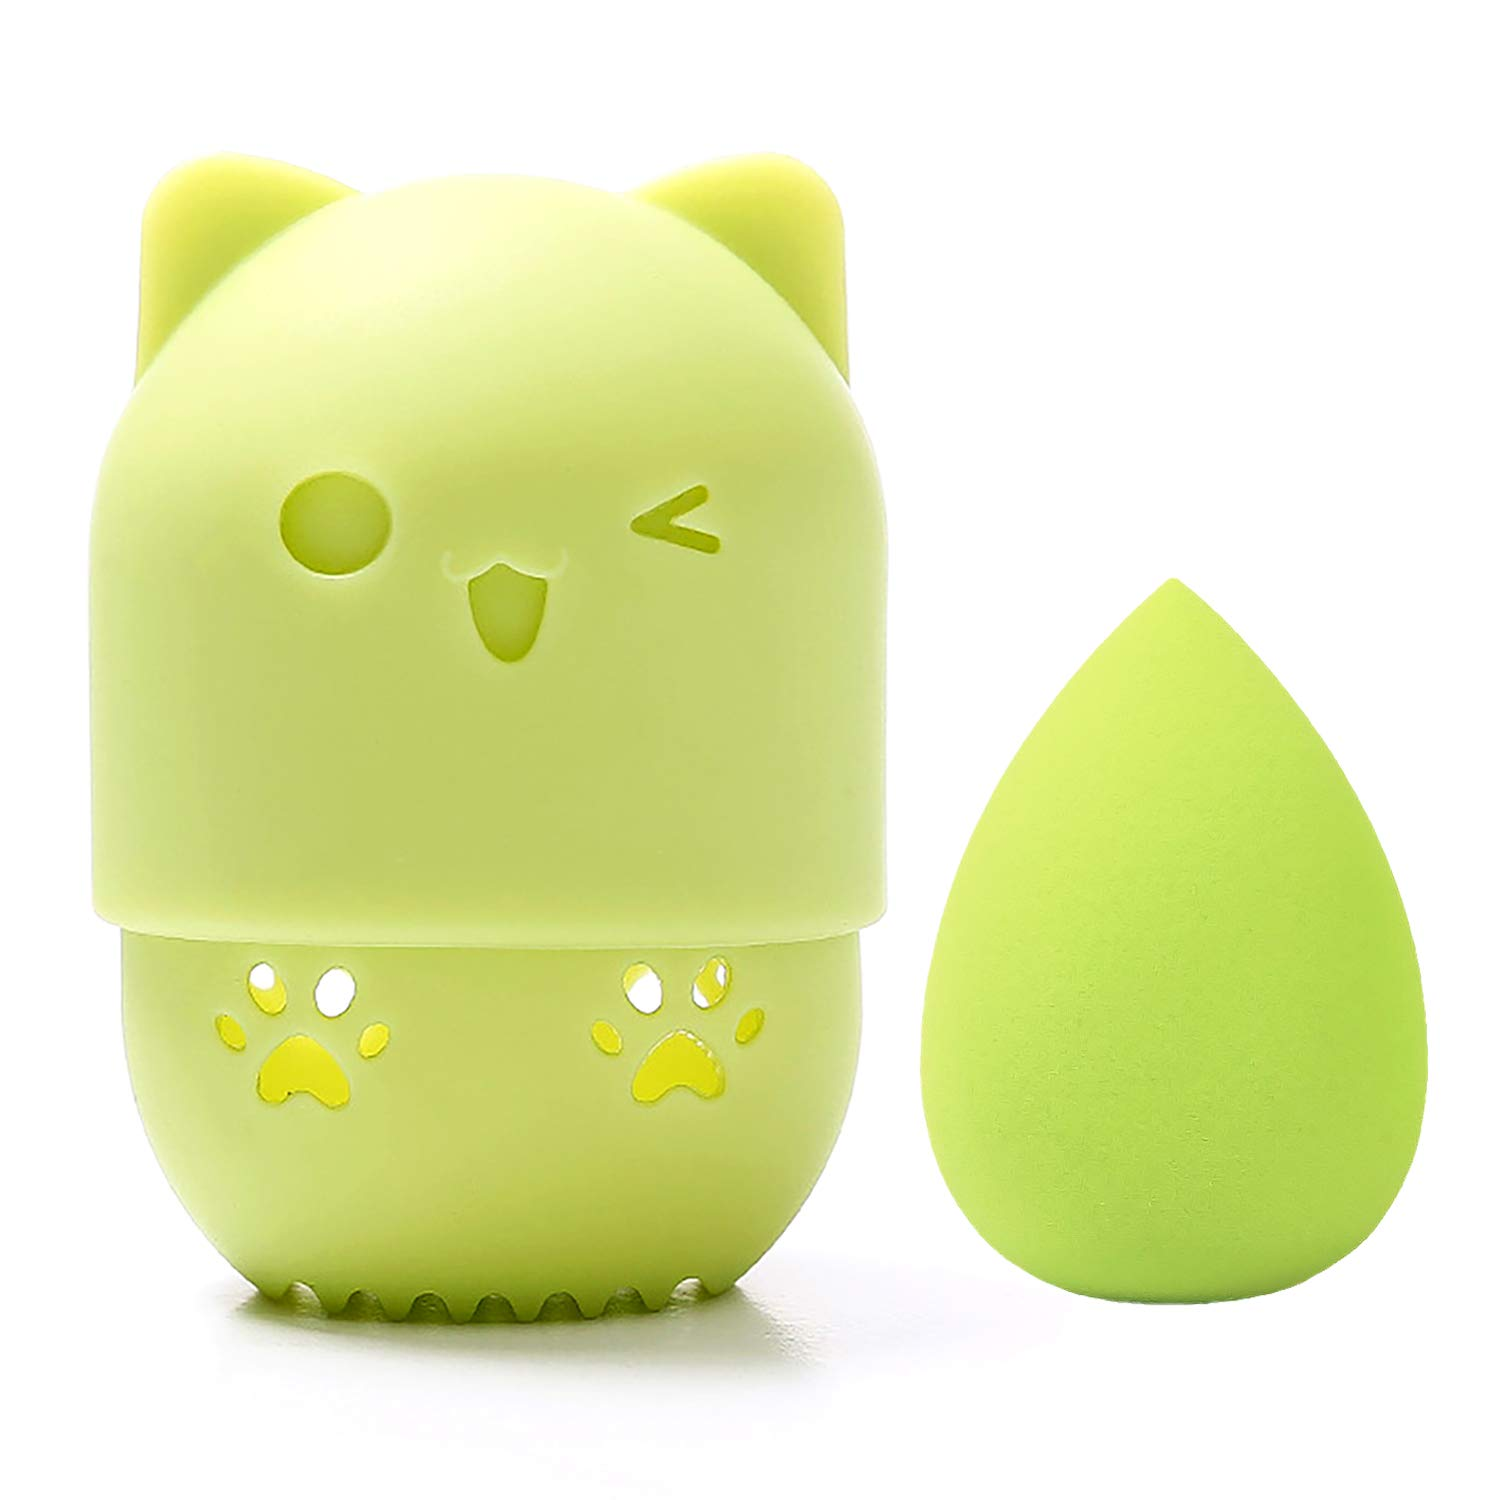 [Allure & Co.] Soft Makeup Sponge and Cute Cat Shaped Container Set - Travel Case for Beauty Blender (Green)